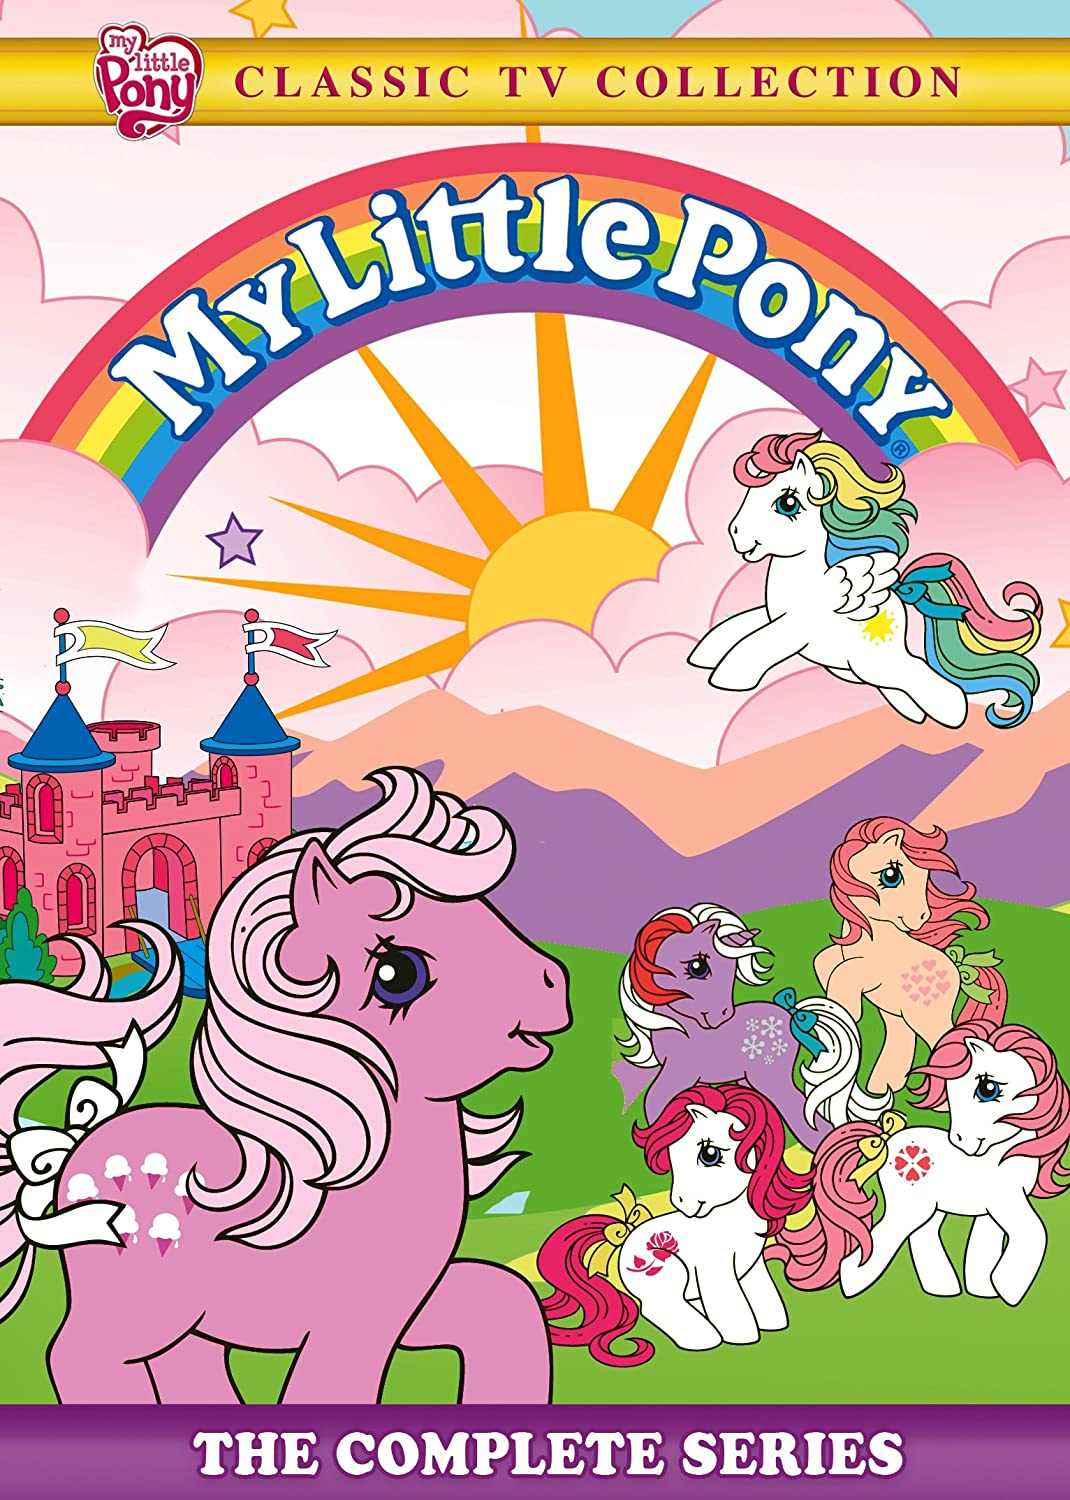 amazon com my little pony the complete series original bettina